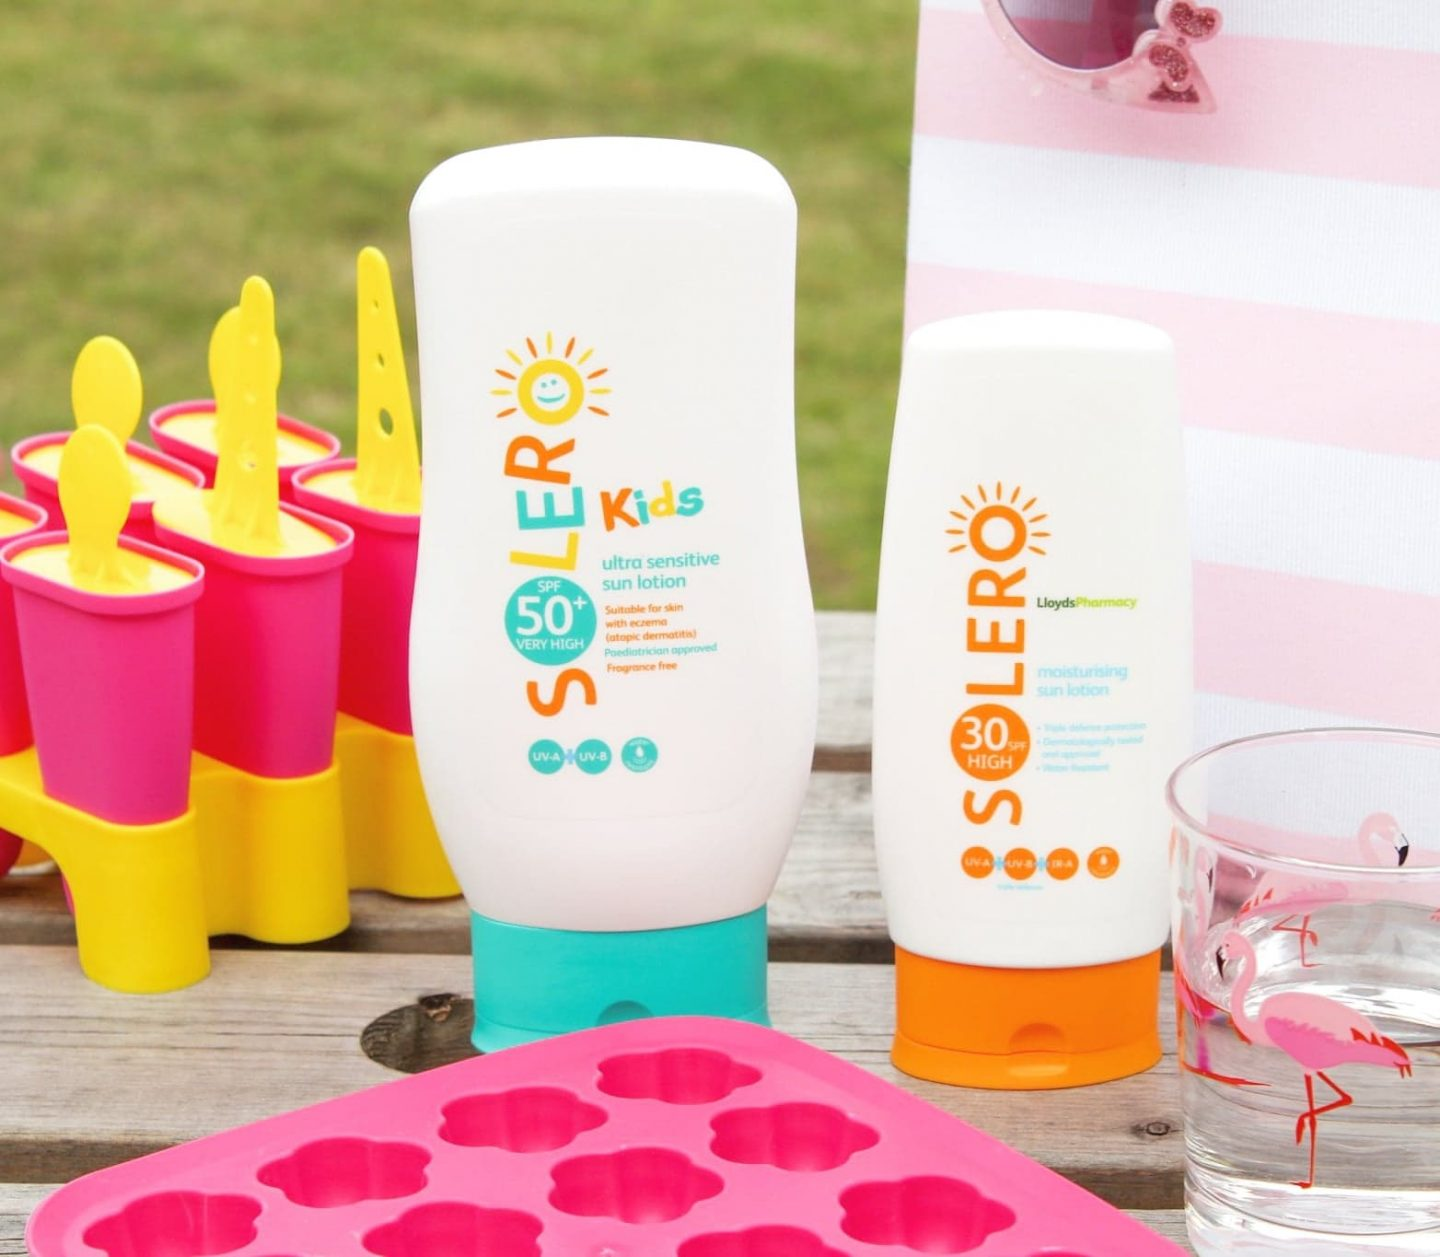 Looking Back at Our Summer Heatwave Family Essentials with Zero Water